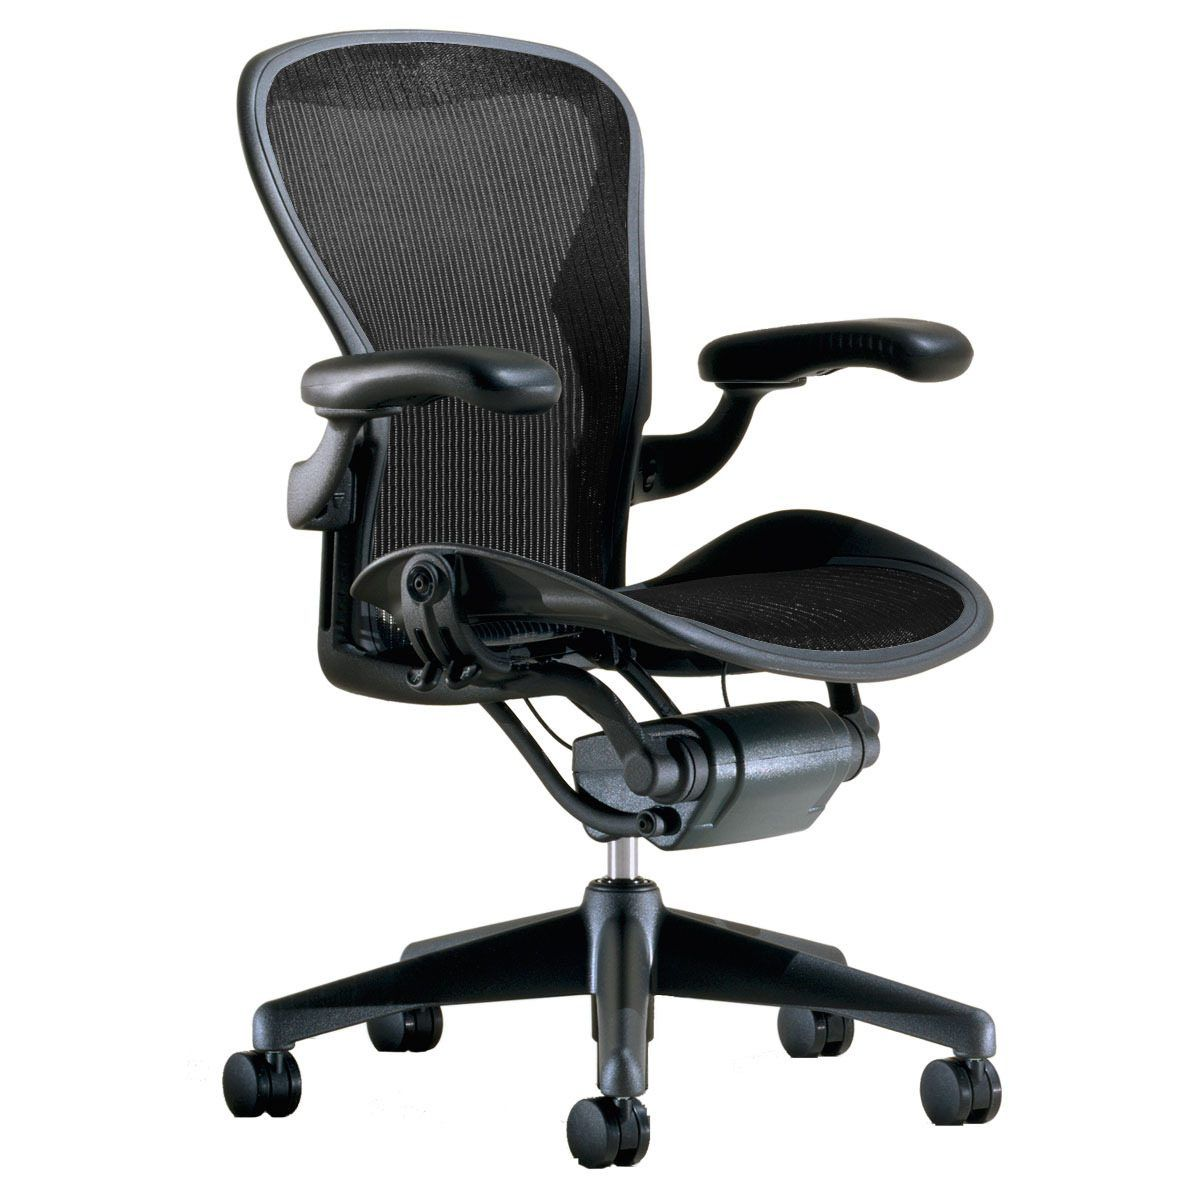 2018 Chair For Office Desk   Large Home Office Furniture Check More At  Http:/